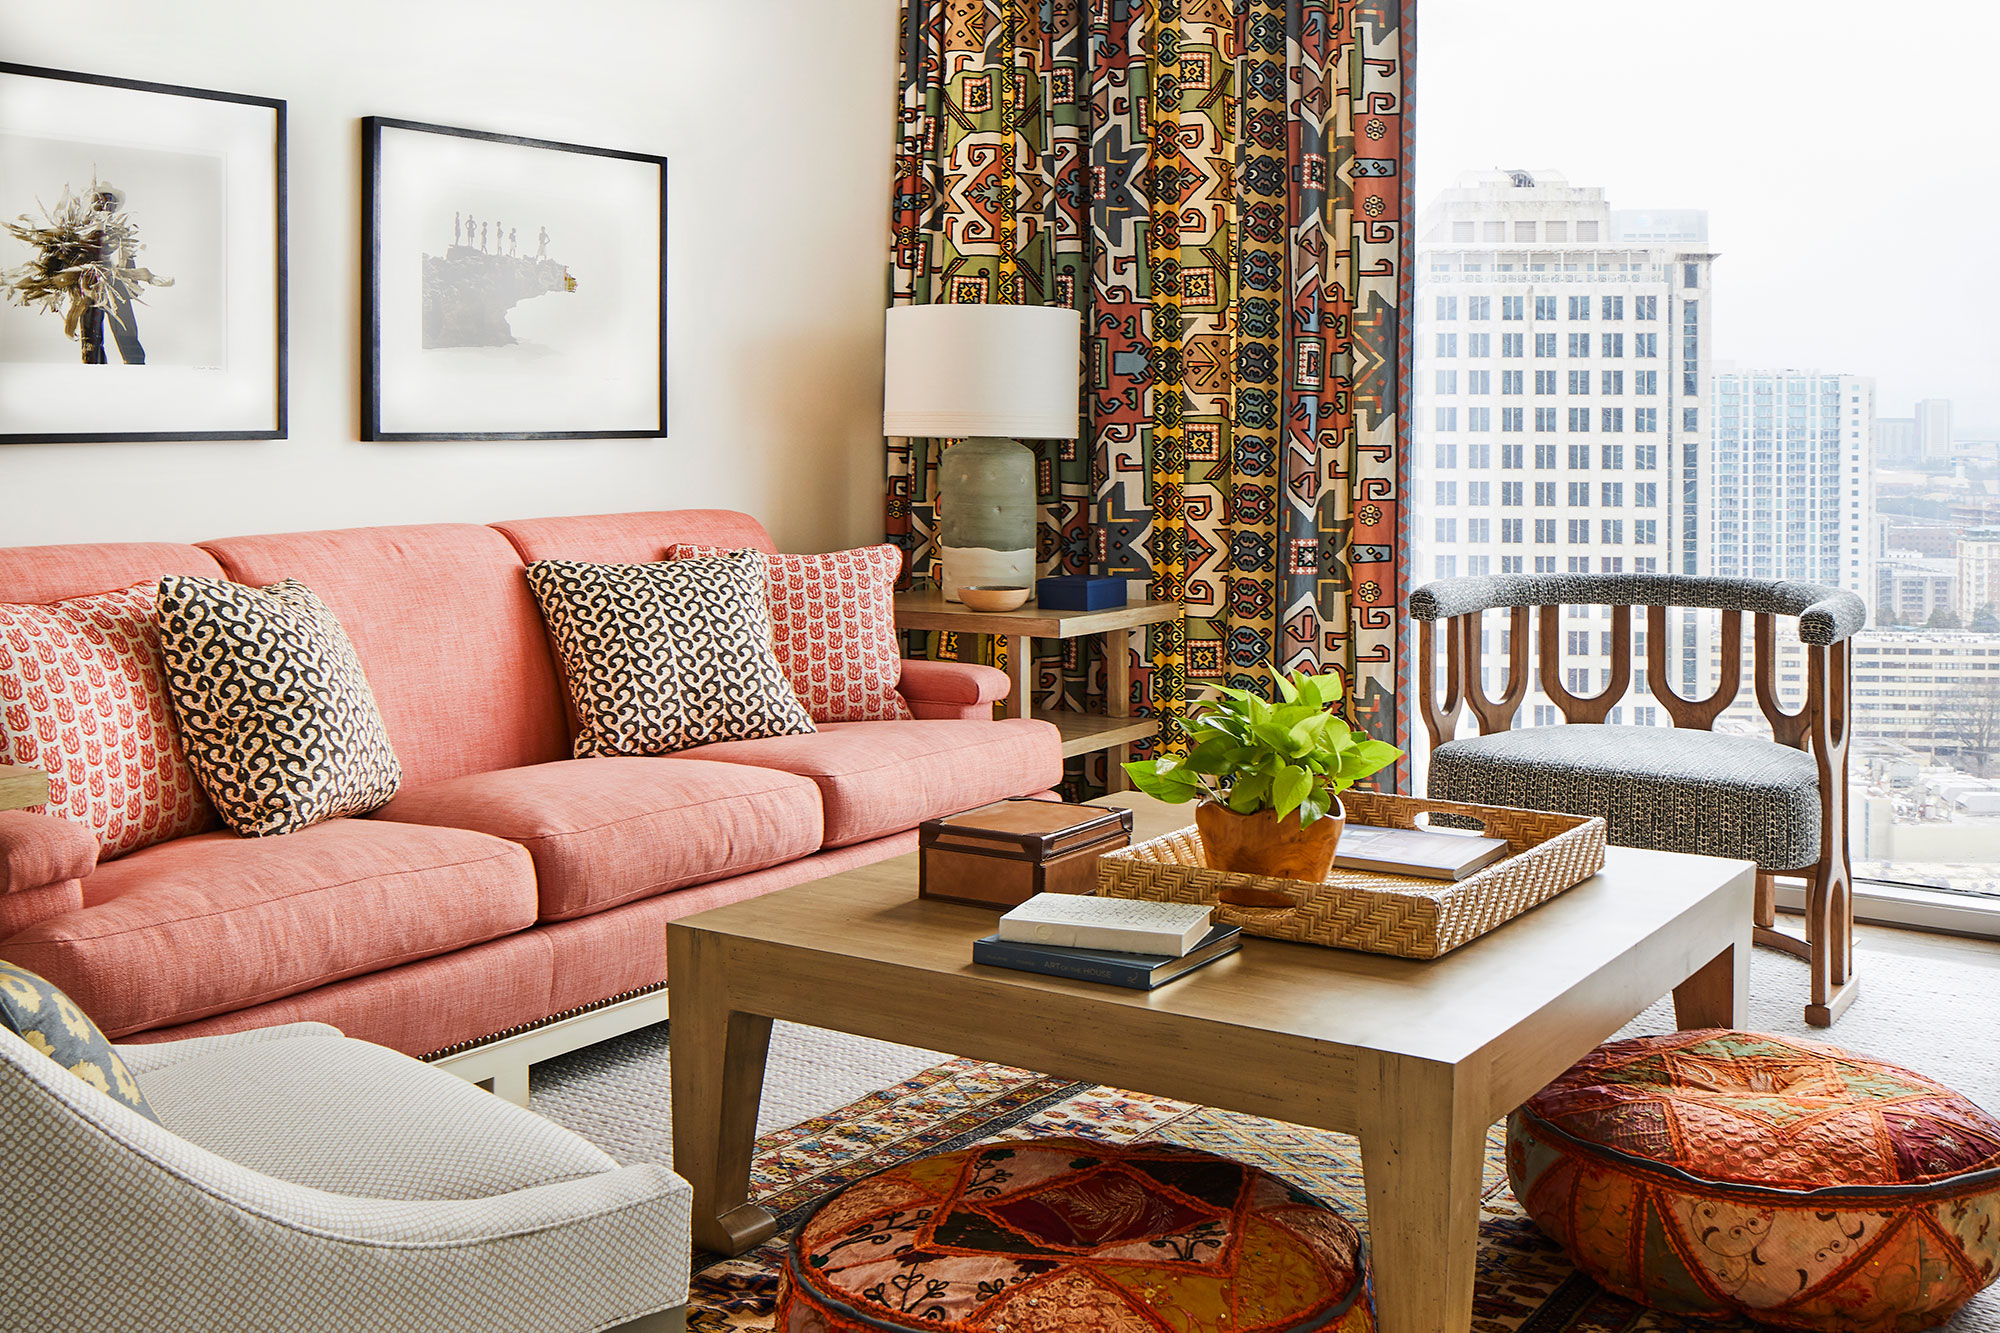 Lindsay Walters living room interior design for a Atlanta apartment